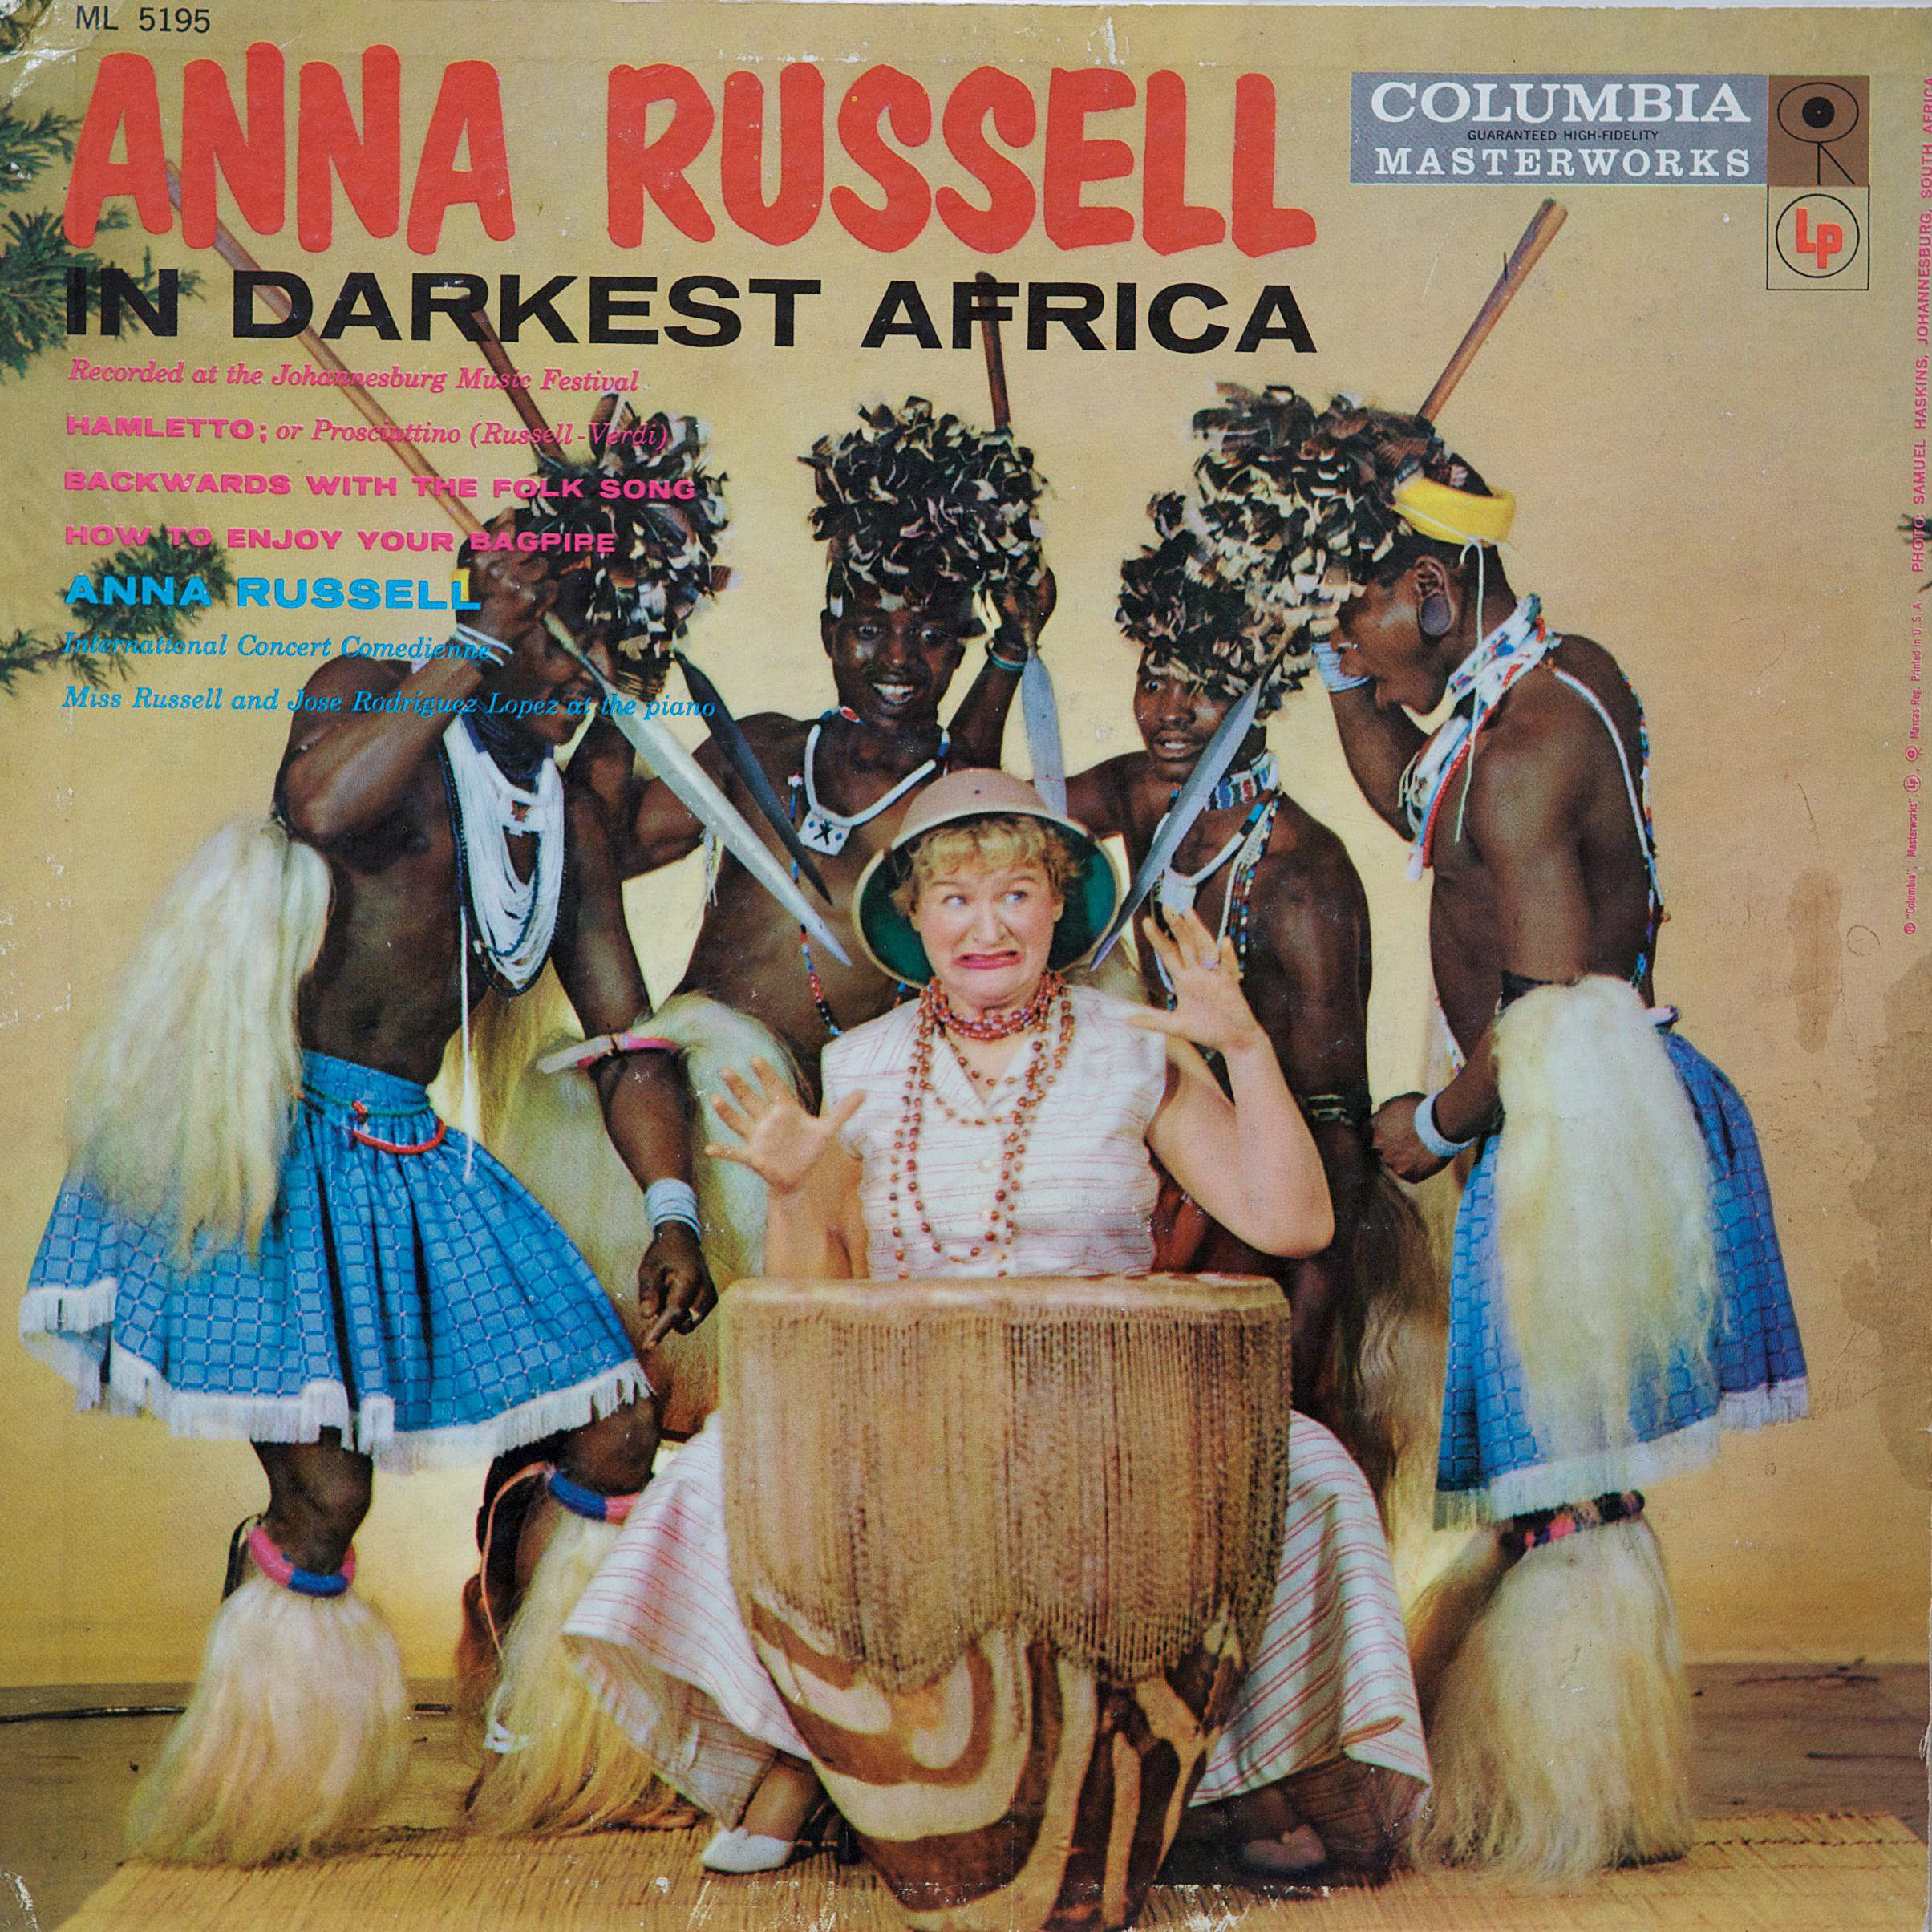 Album artwork for 'In Darkest Africa' by Anna Russel